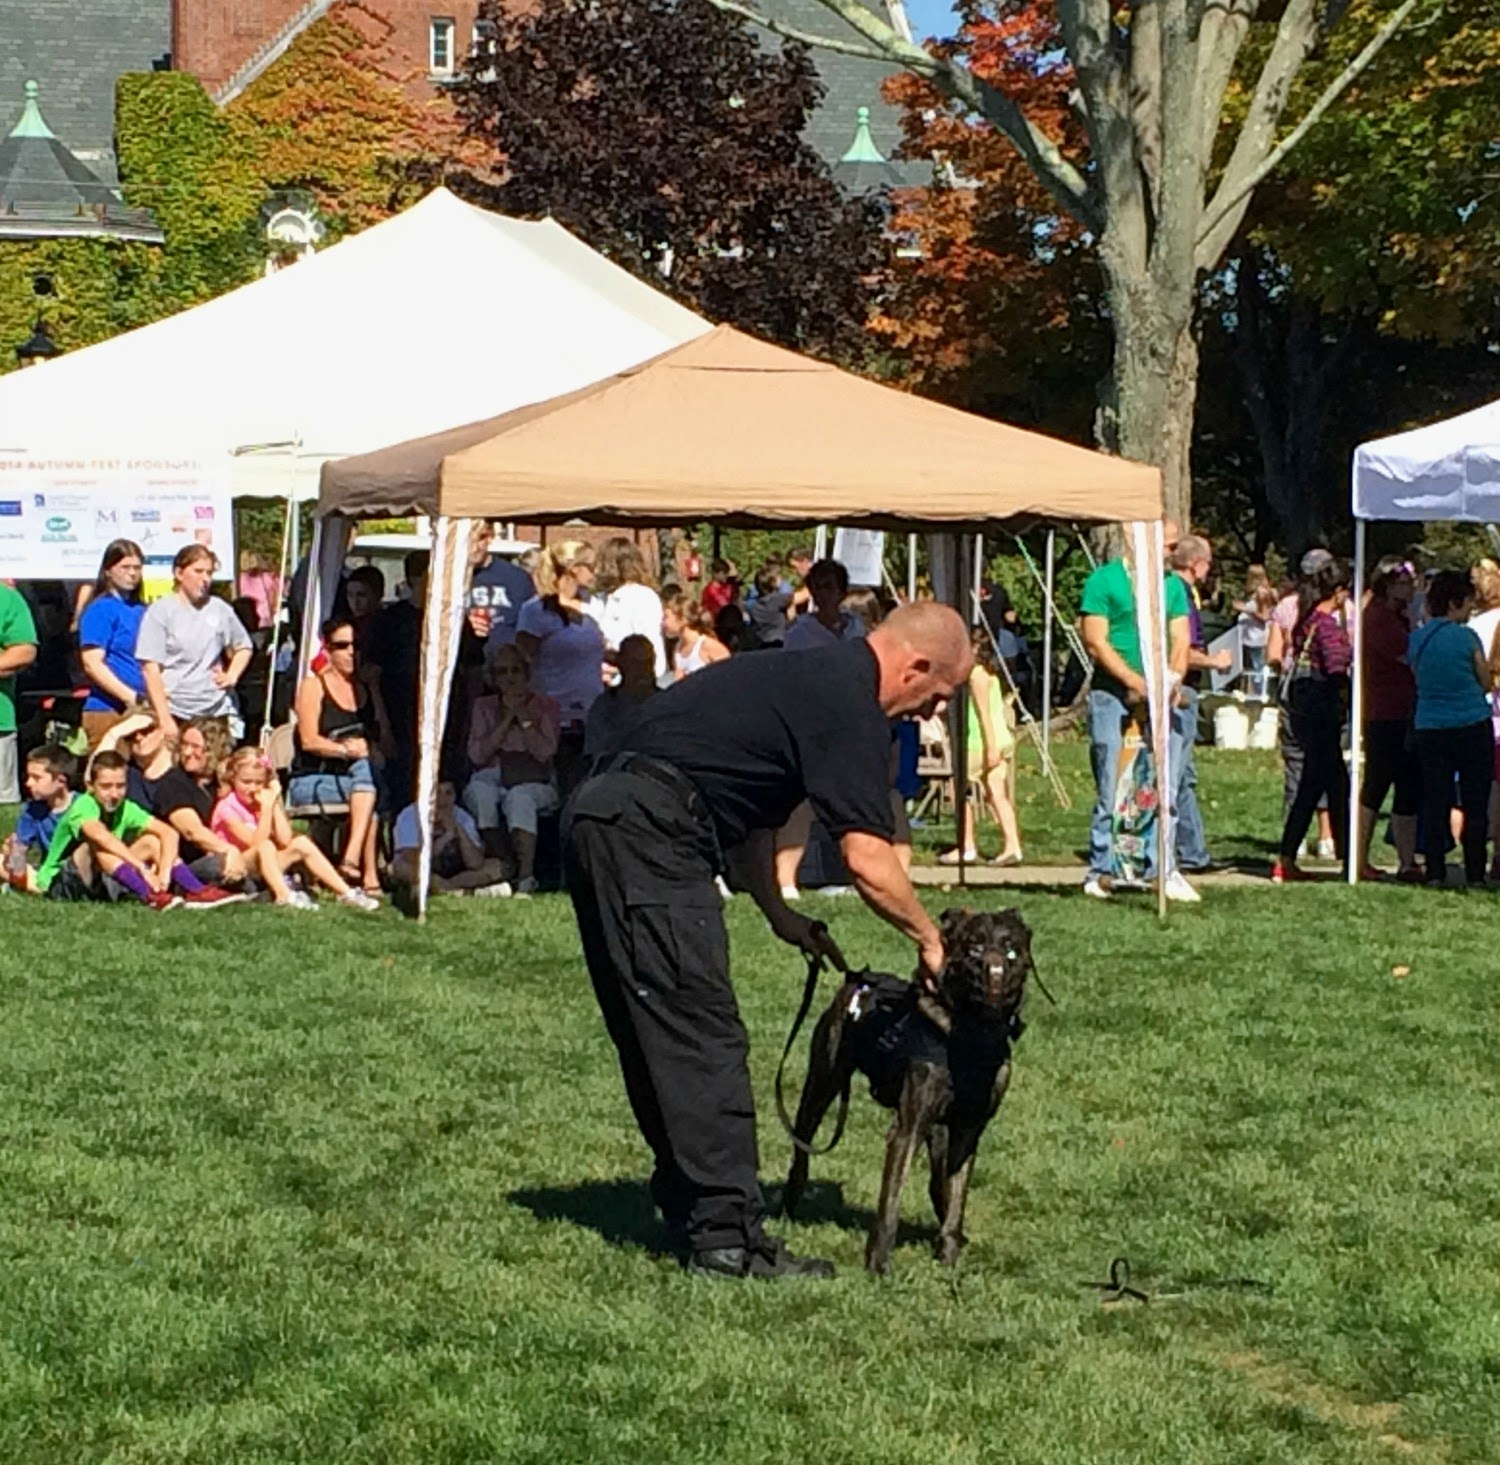 Autumn-fest - New England Fall Events - k-9 demo